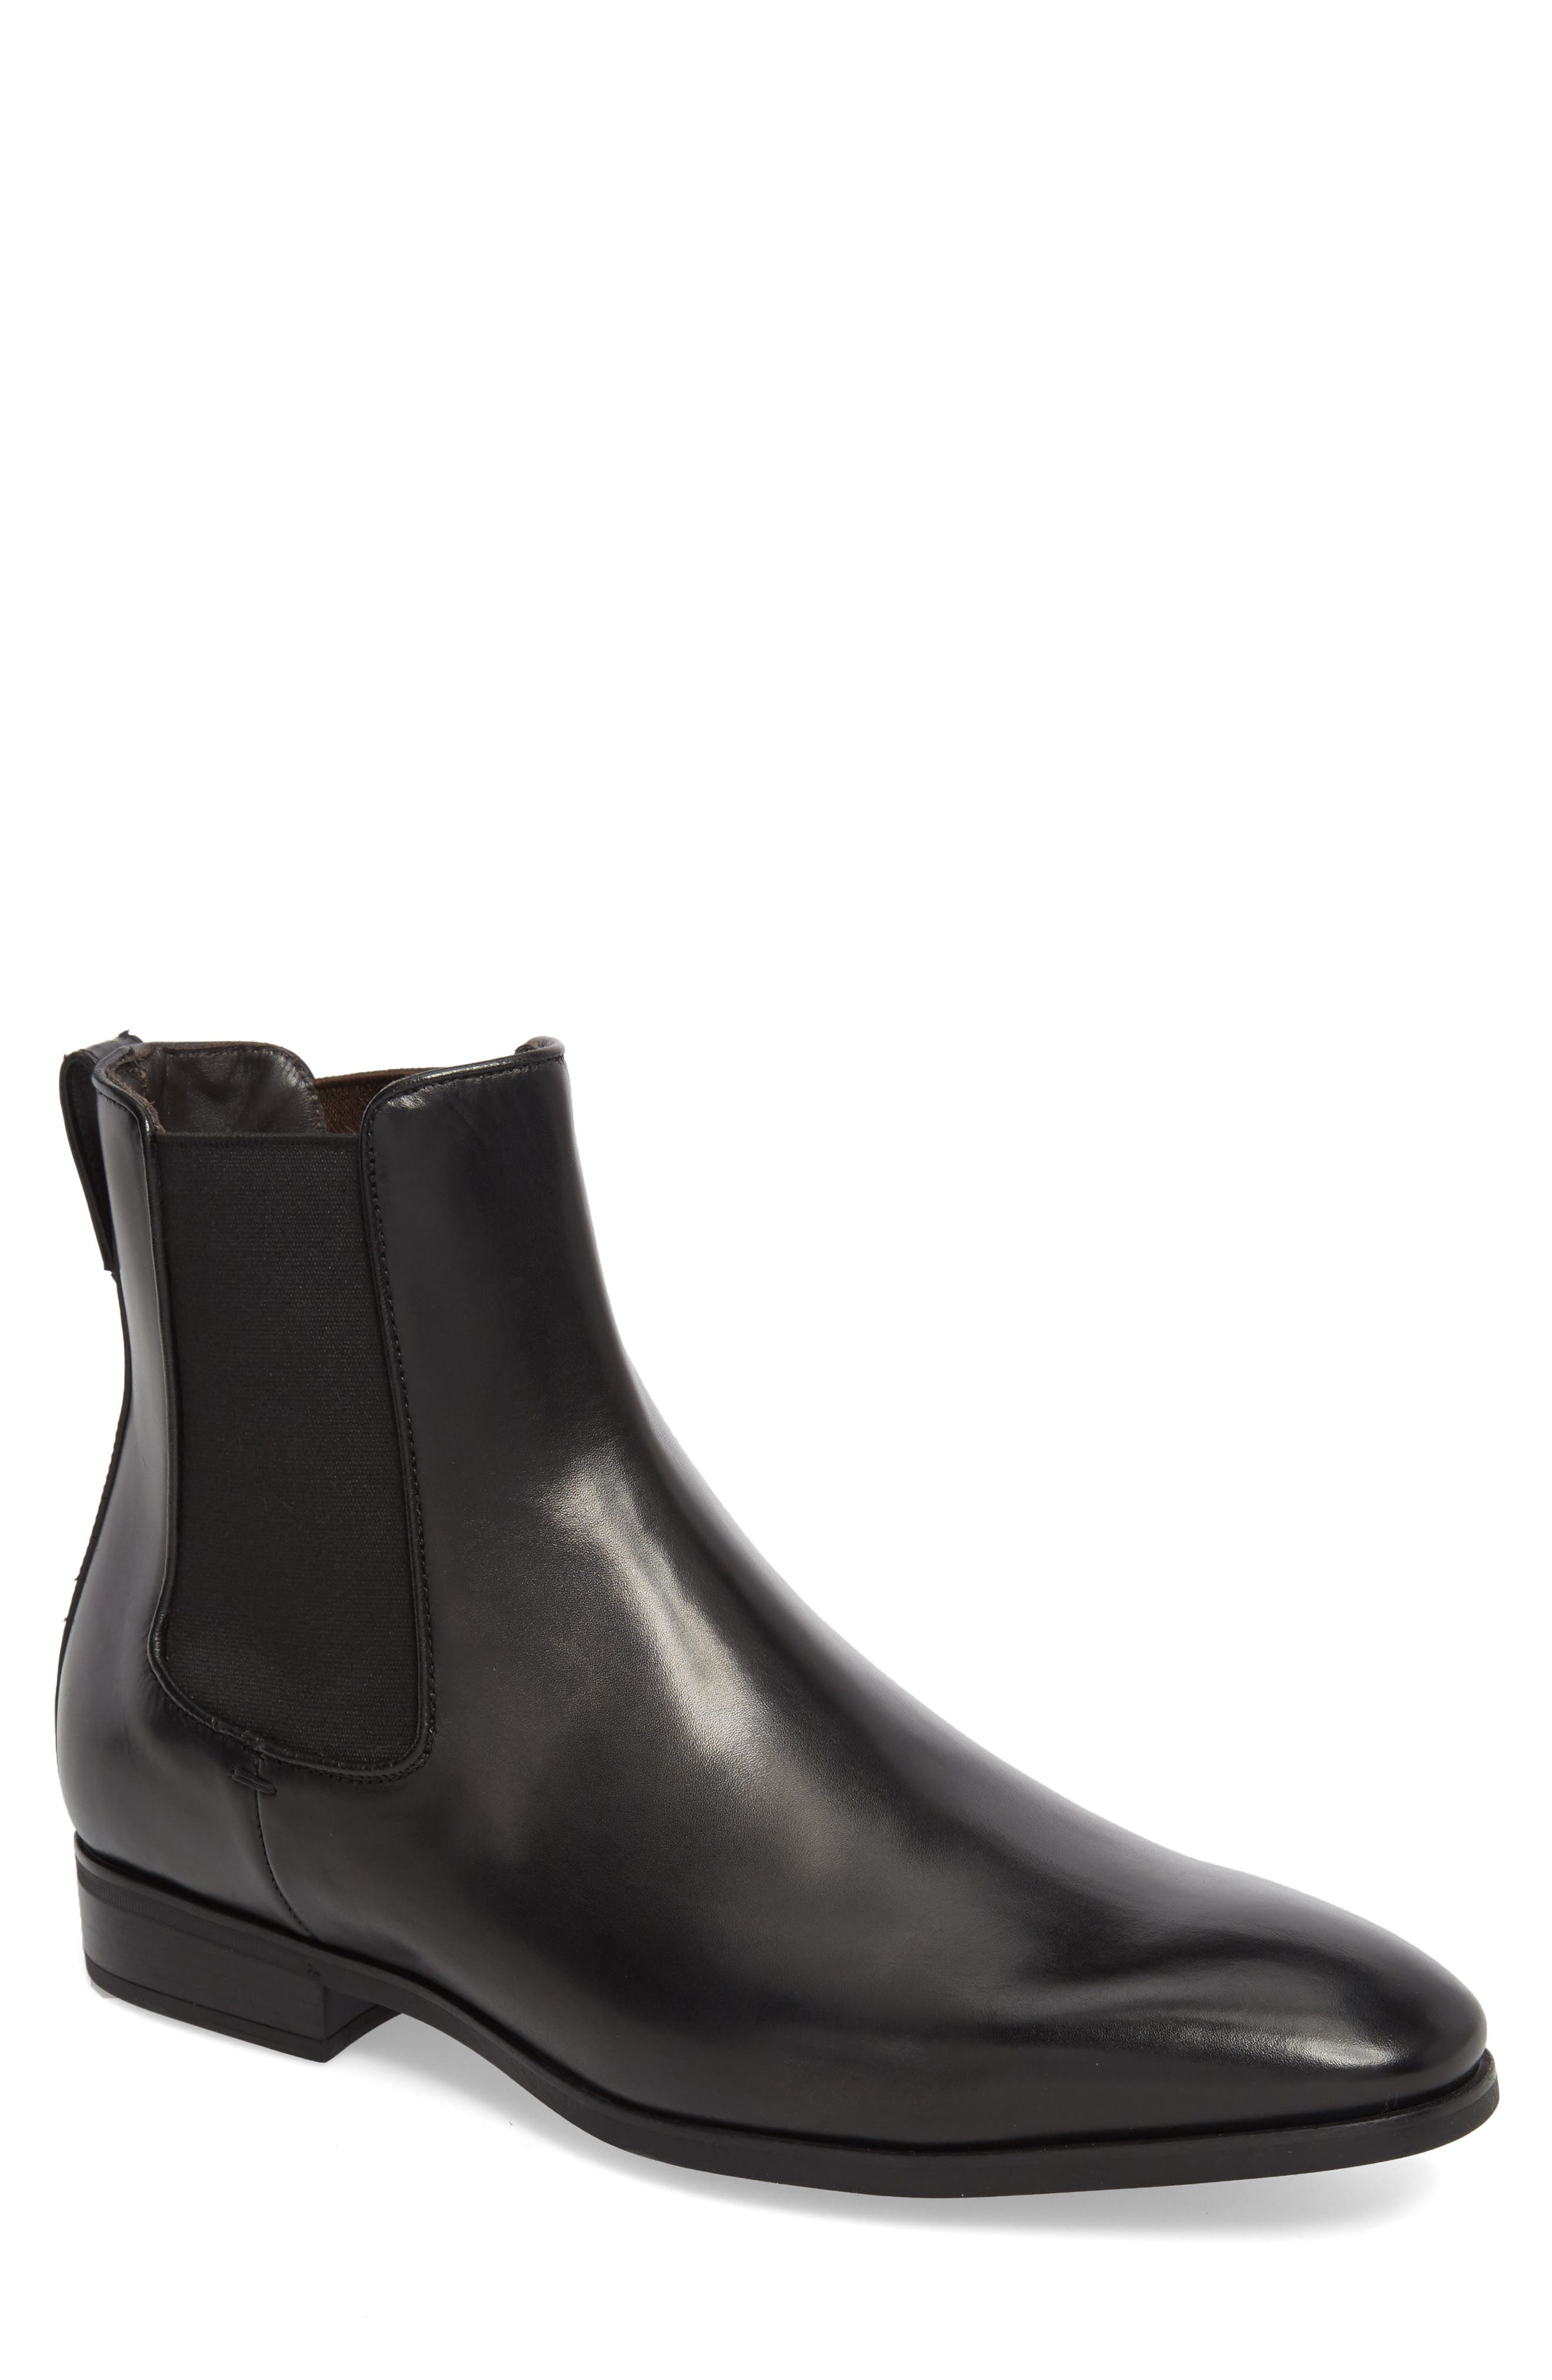 To Boot New York Aldrich Mid Chelsea Boot, Black